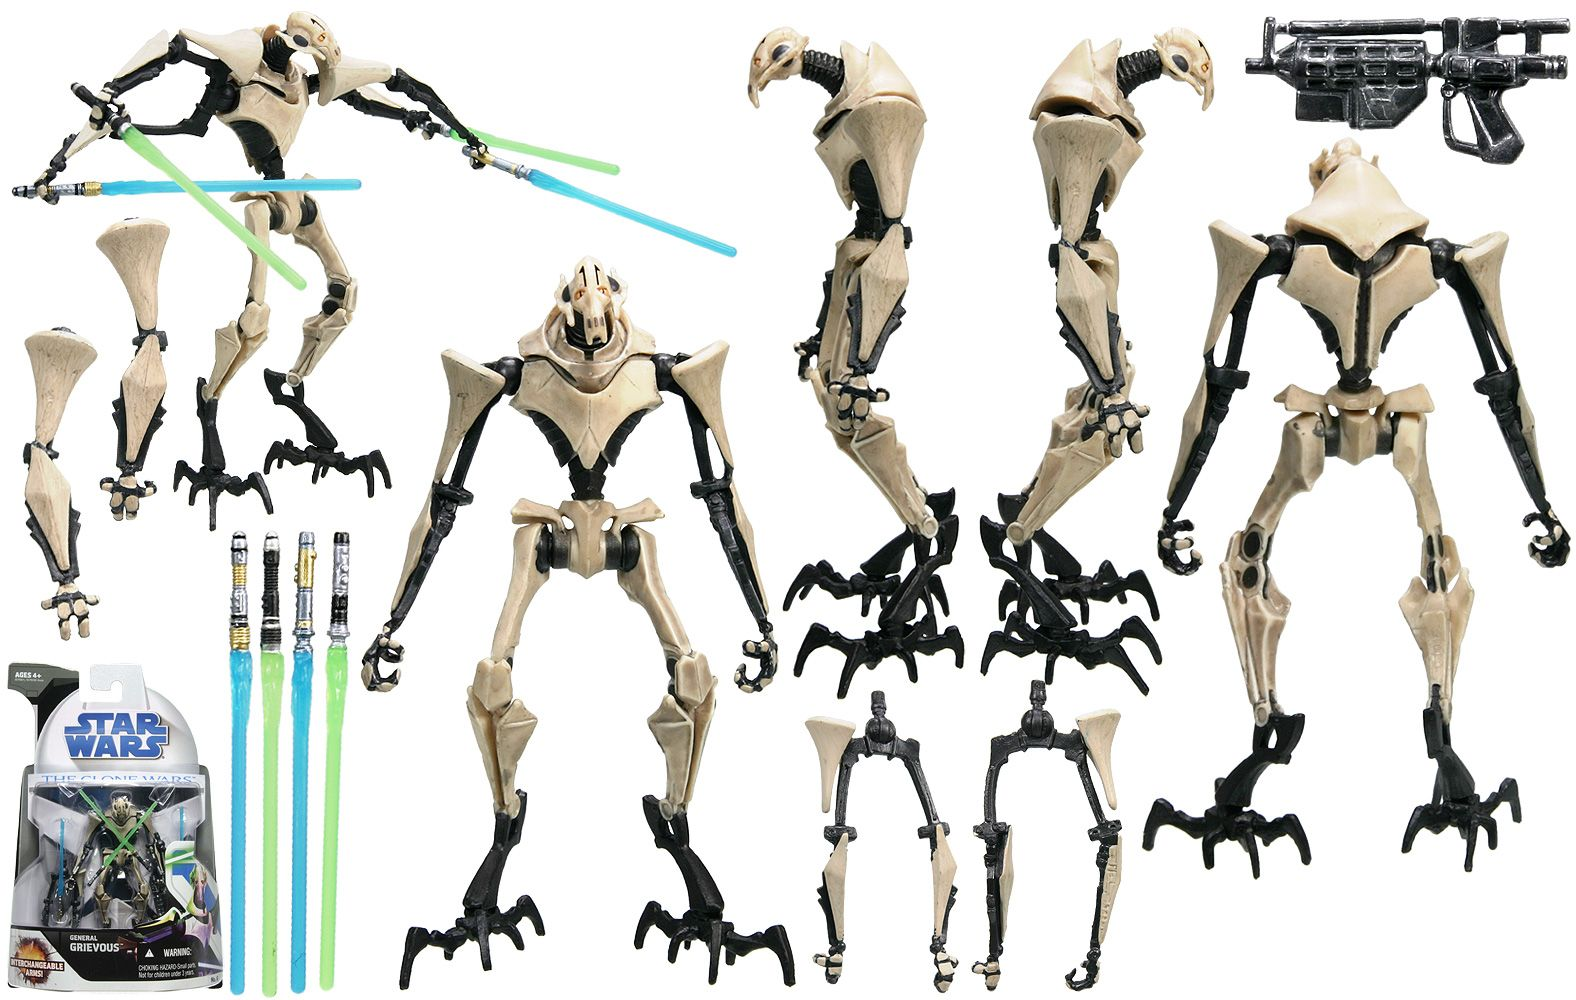 General Grievous Hasbro The Clone Wars No 6 Clone Wars War Star Wars Toys